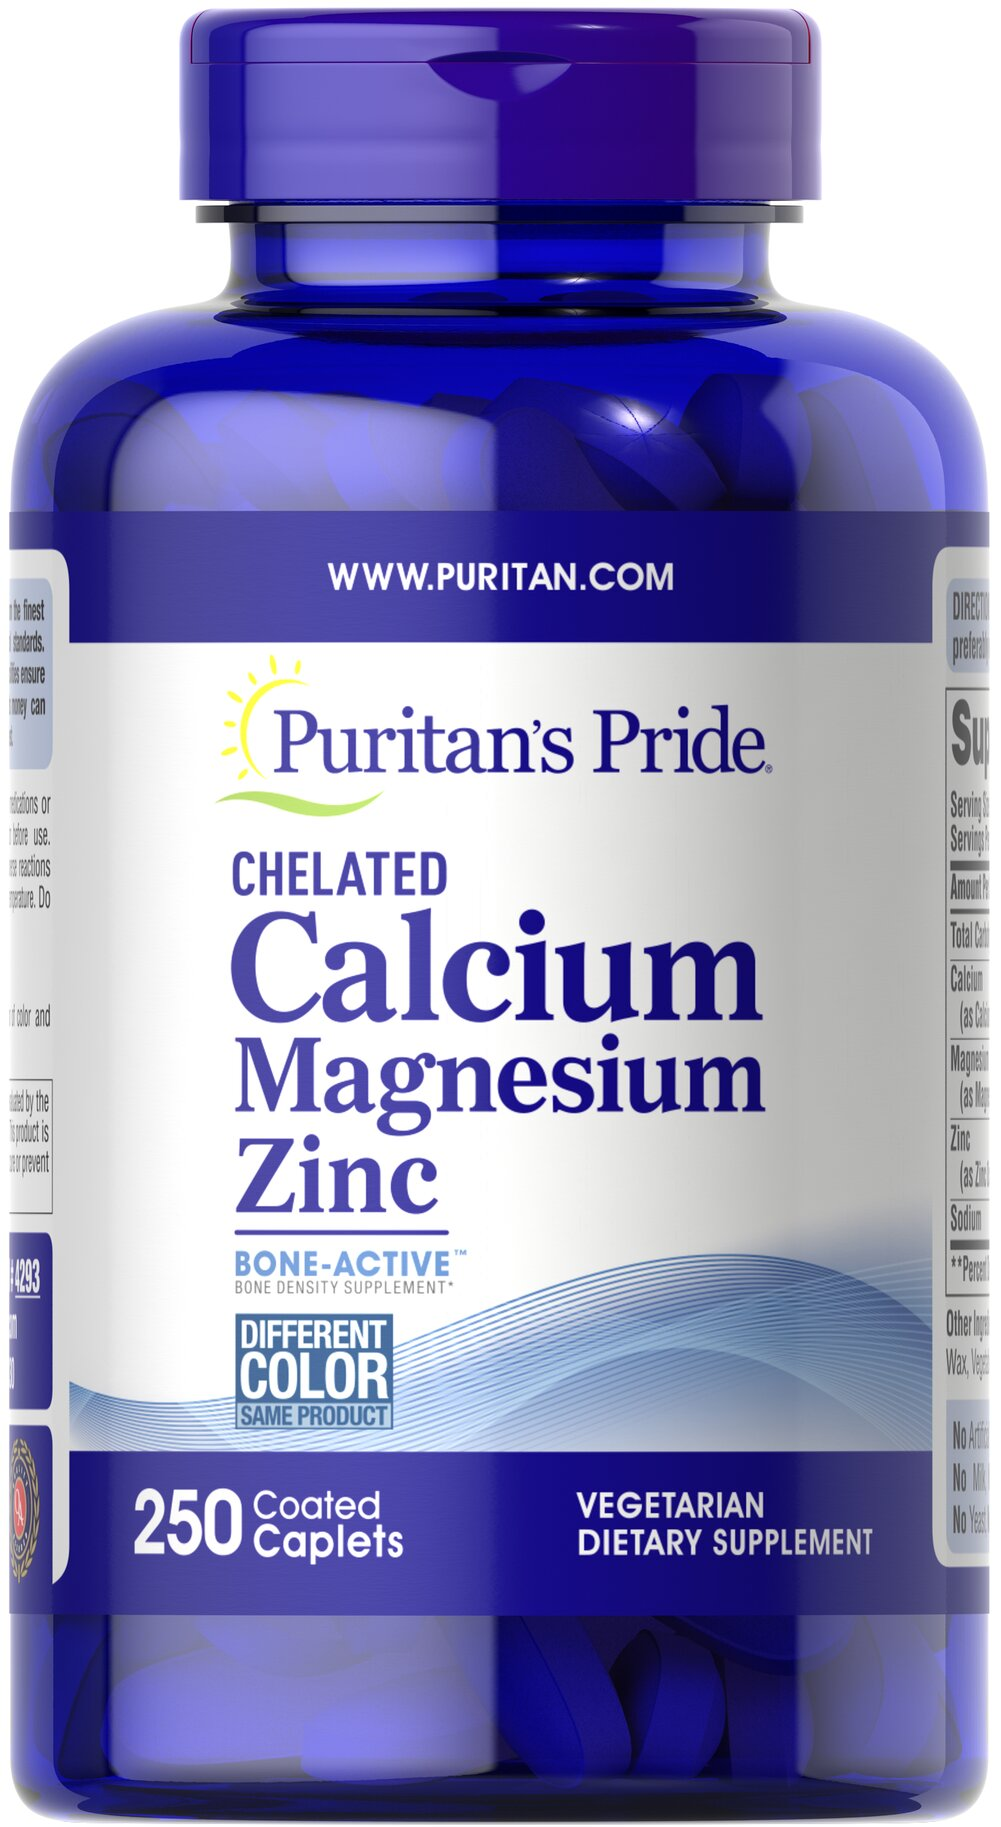 Chelated Calcium Magnesium Zinc <p>Looking for extra support for your bones?</p><p>Puritan's Pride offers a high quality Calcium, Magnesium, Zinc supplement that delivers 1000 mg Calcium, 400 mg Magnesium and 25 mg Zinc in one chelated form for optimal absorption.</p> 250 Caplets 1000 mg/400 mg/25 mg $18.49